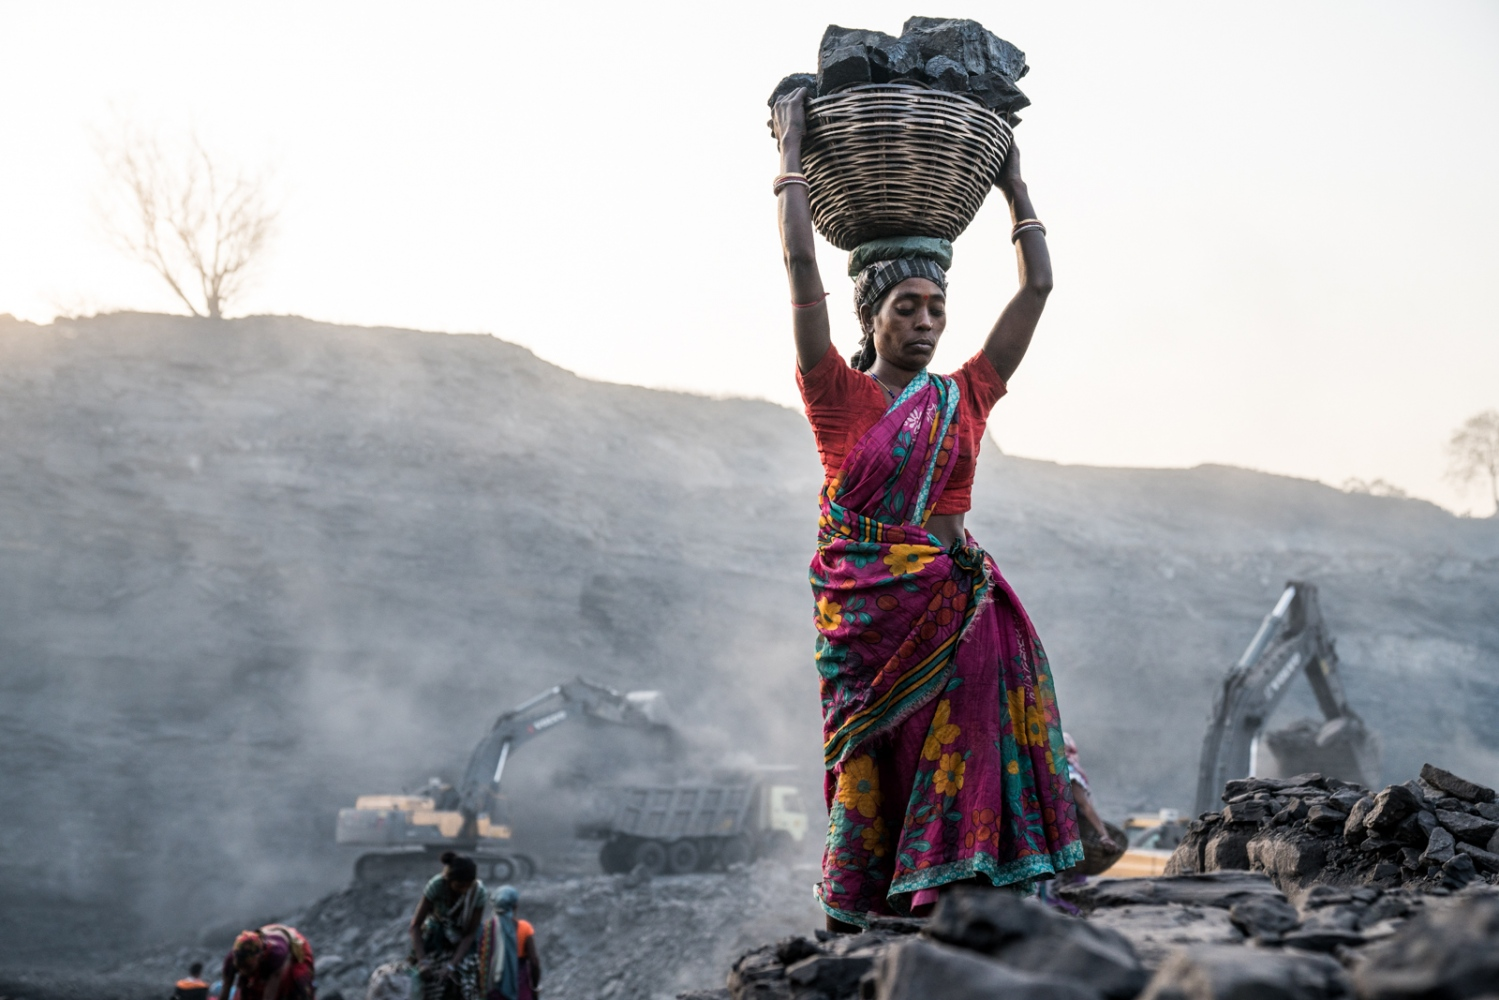 A woman scavenging coal carefully walks up the hill balancing a basket of coal on her head for sale on the black market.